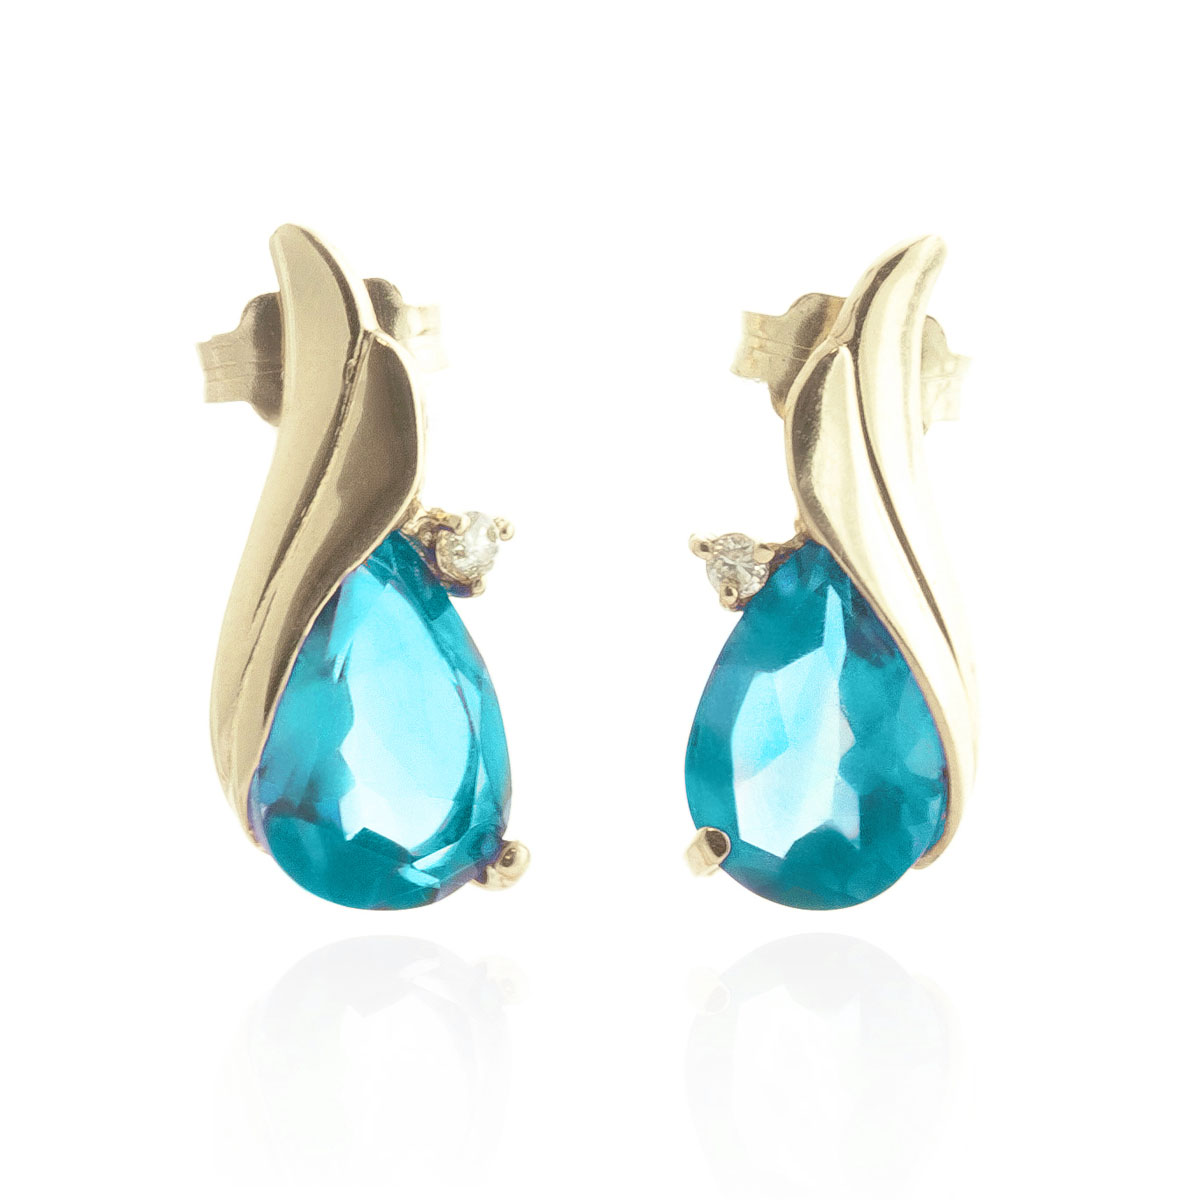 Blue Topaz Stud Earrings 5.06 ctw in 9ct Gold